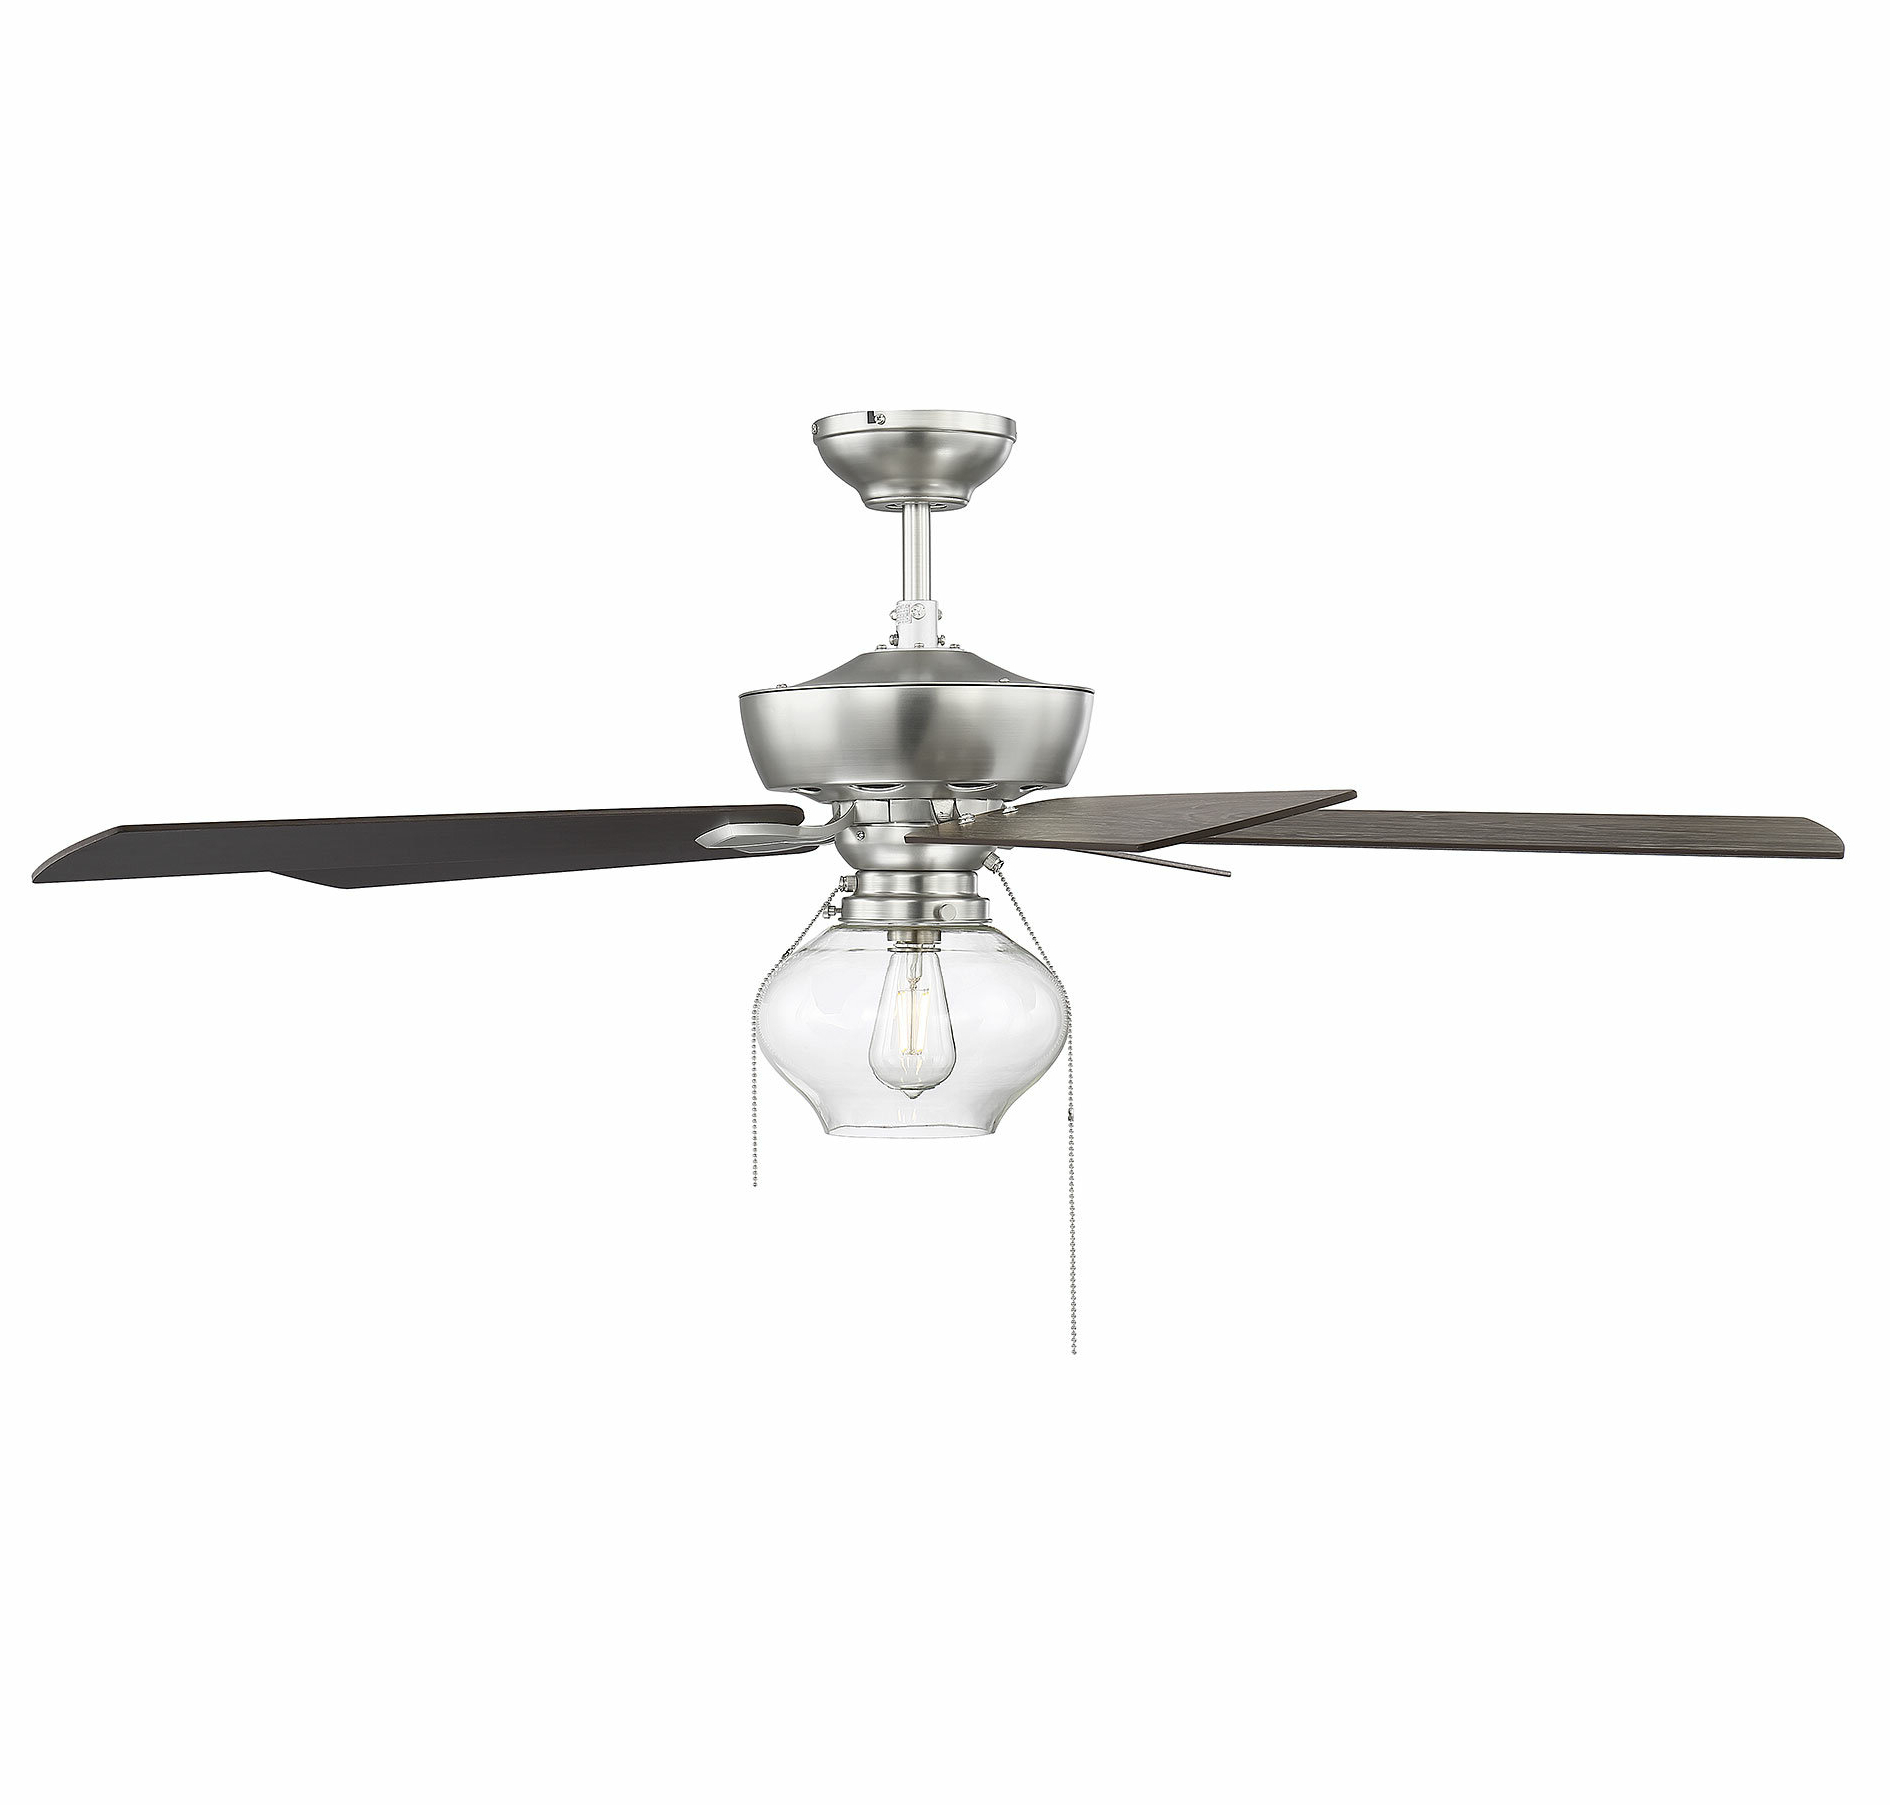 """Kyla 5 Blade Ceiling Fans Within Preferred 52"""" Lundy 5 Blade Ceiling Fan, Light Kit Included (Gallery 11 of 20)"""